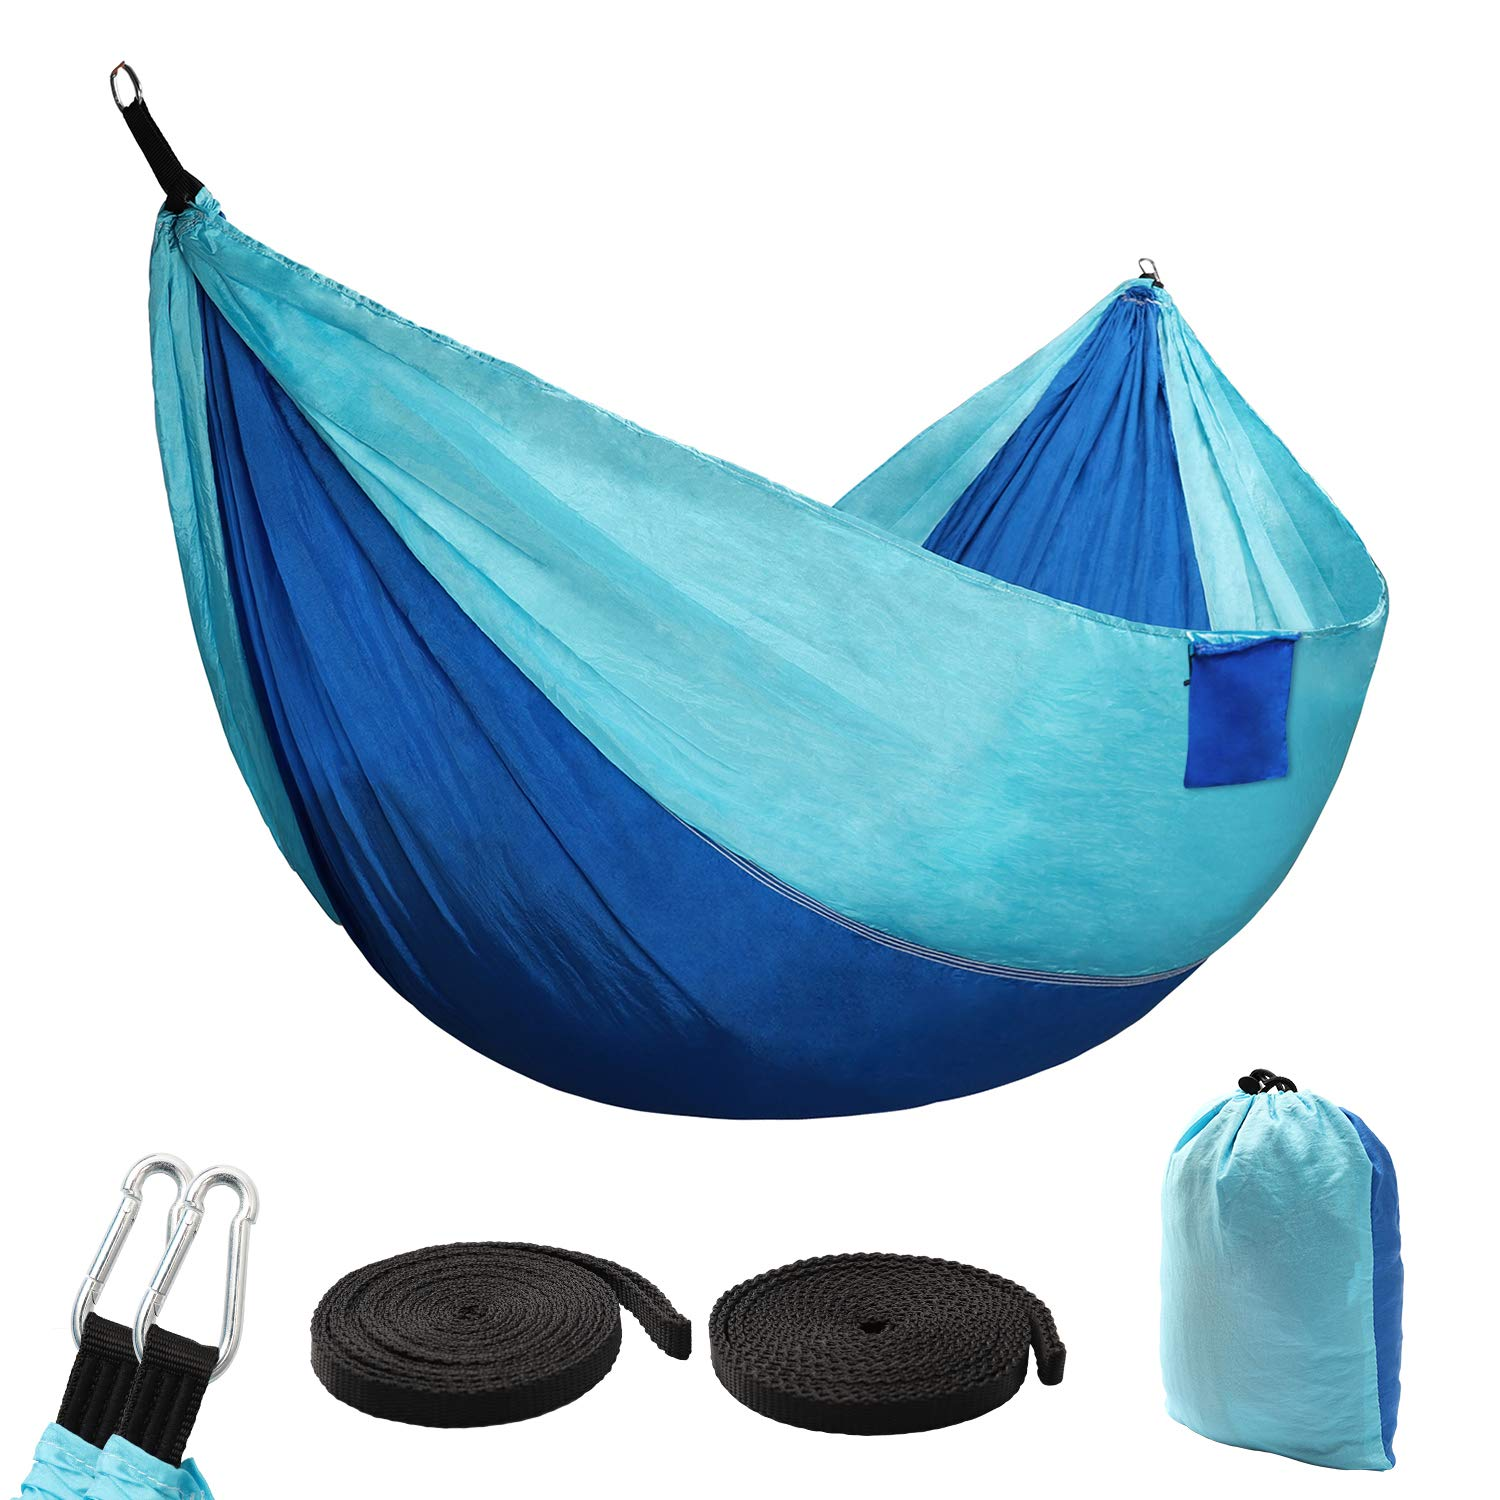 Camping Hammock Single Double- Portable Indoor Outdoor Tree Hammock with 2 Hanging Straps, Lightweight Nylon Best Parachute Hammocks for Backpacking, Travel, Beach, Backyard, Hiking